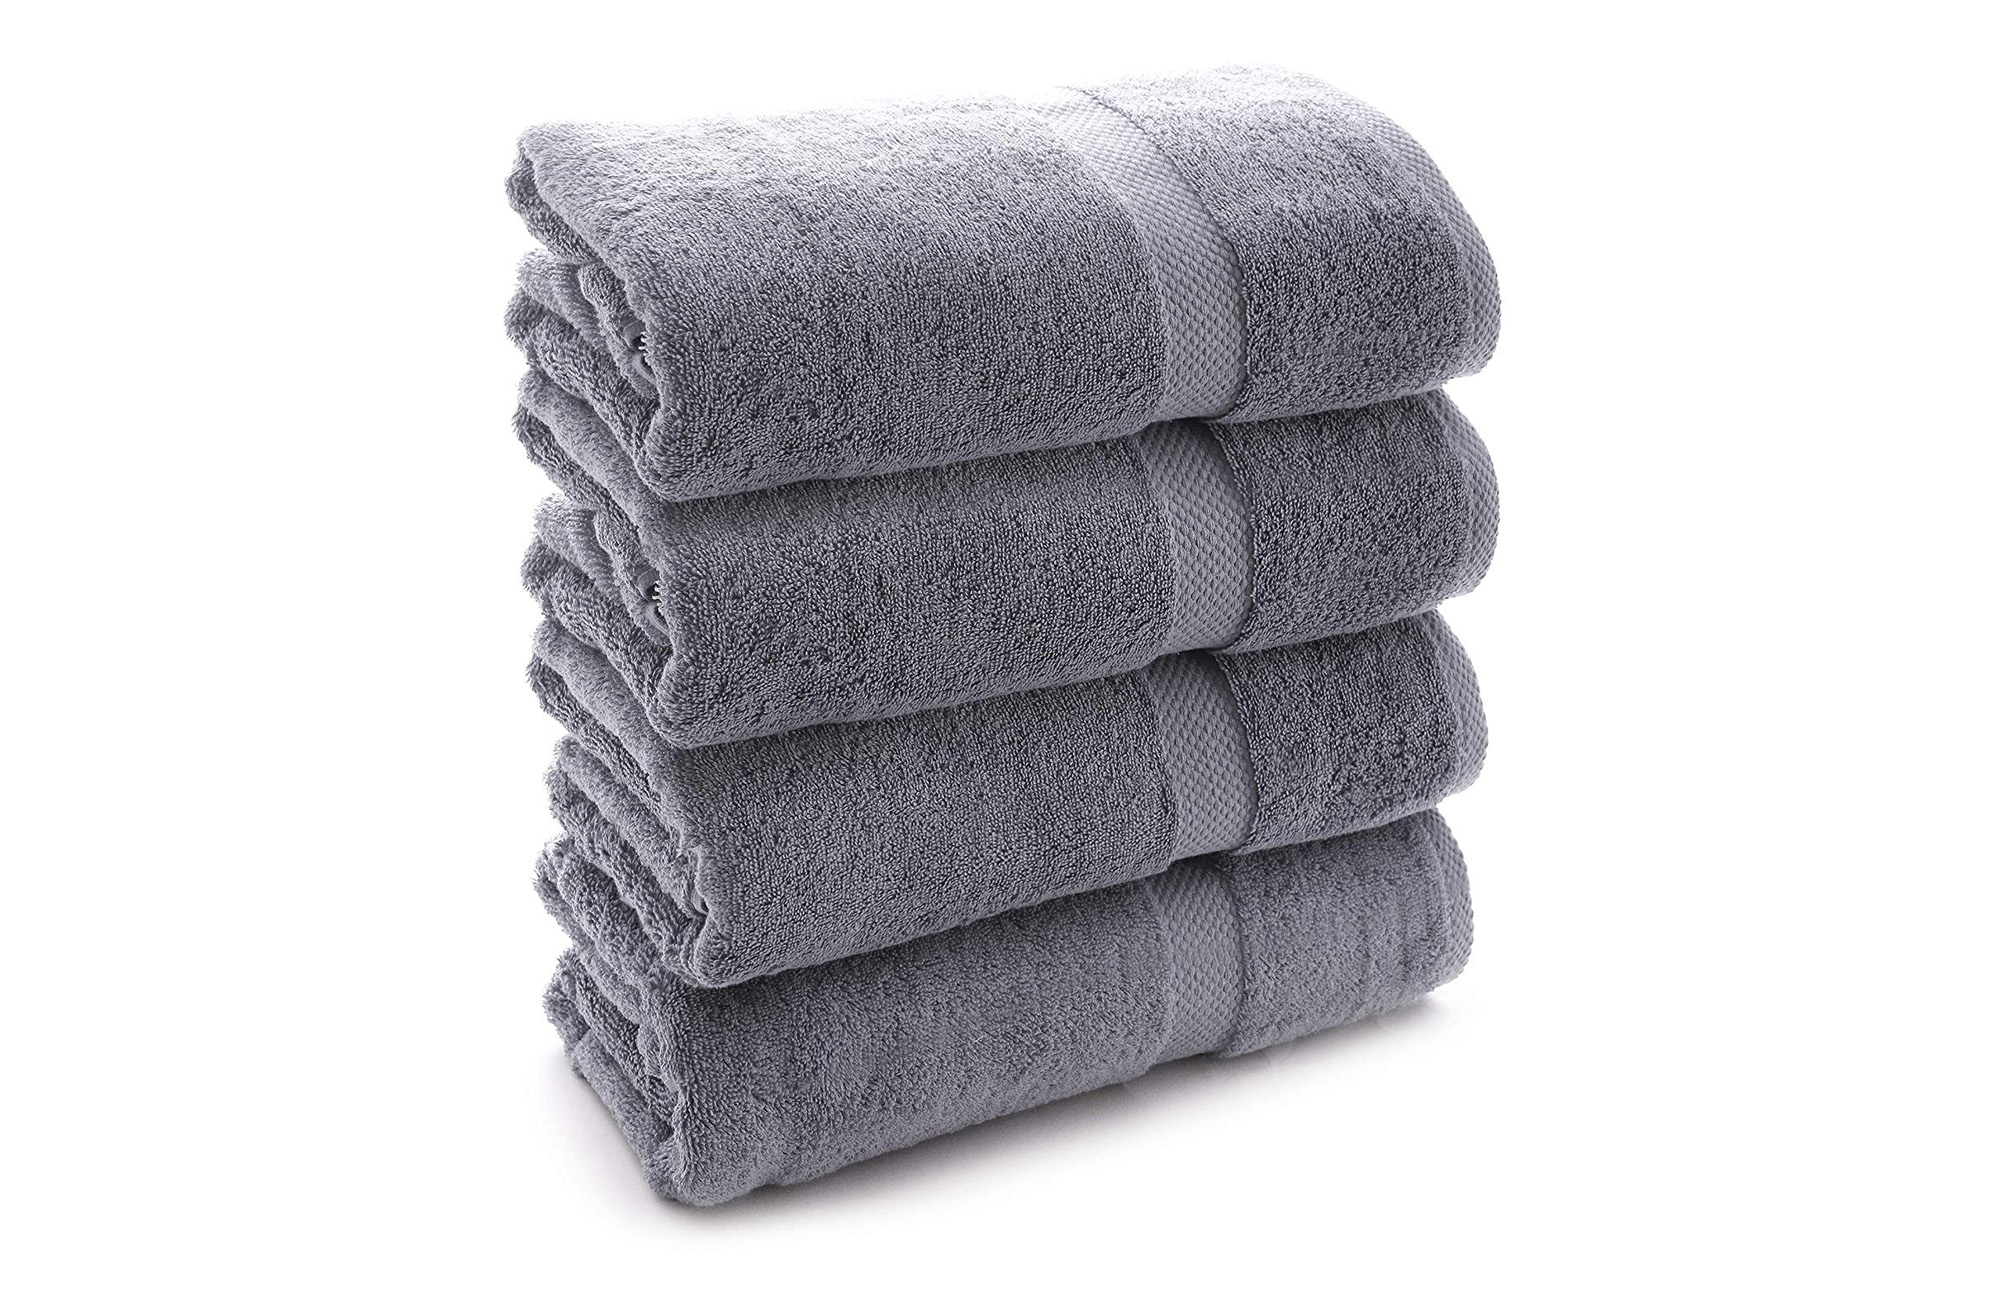 Best Luxury Bath Towels: Chakir Turkish Linens Luxury Hotel & Spa Bath Towel